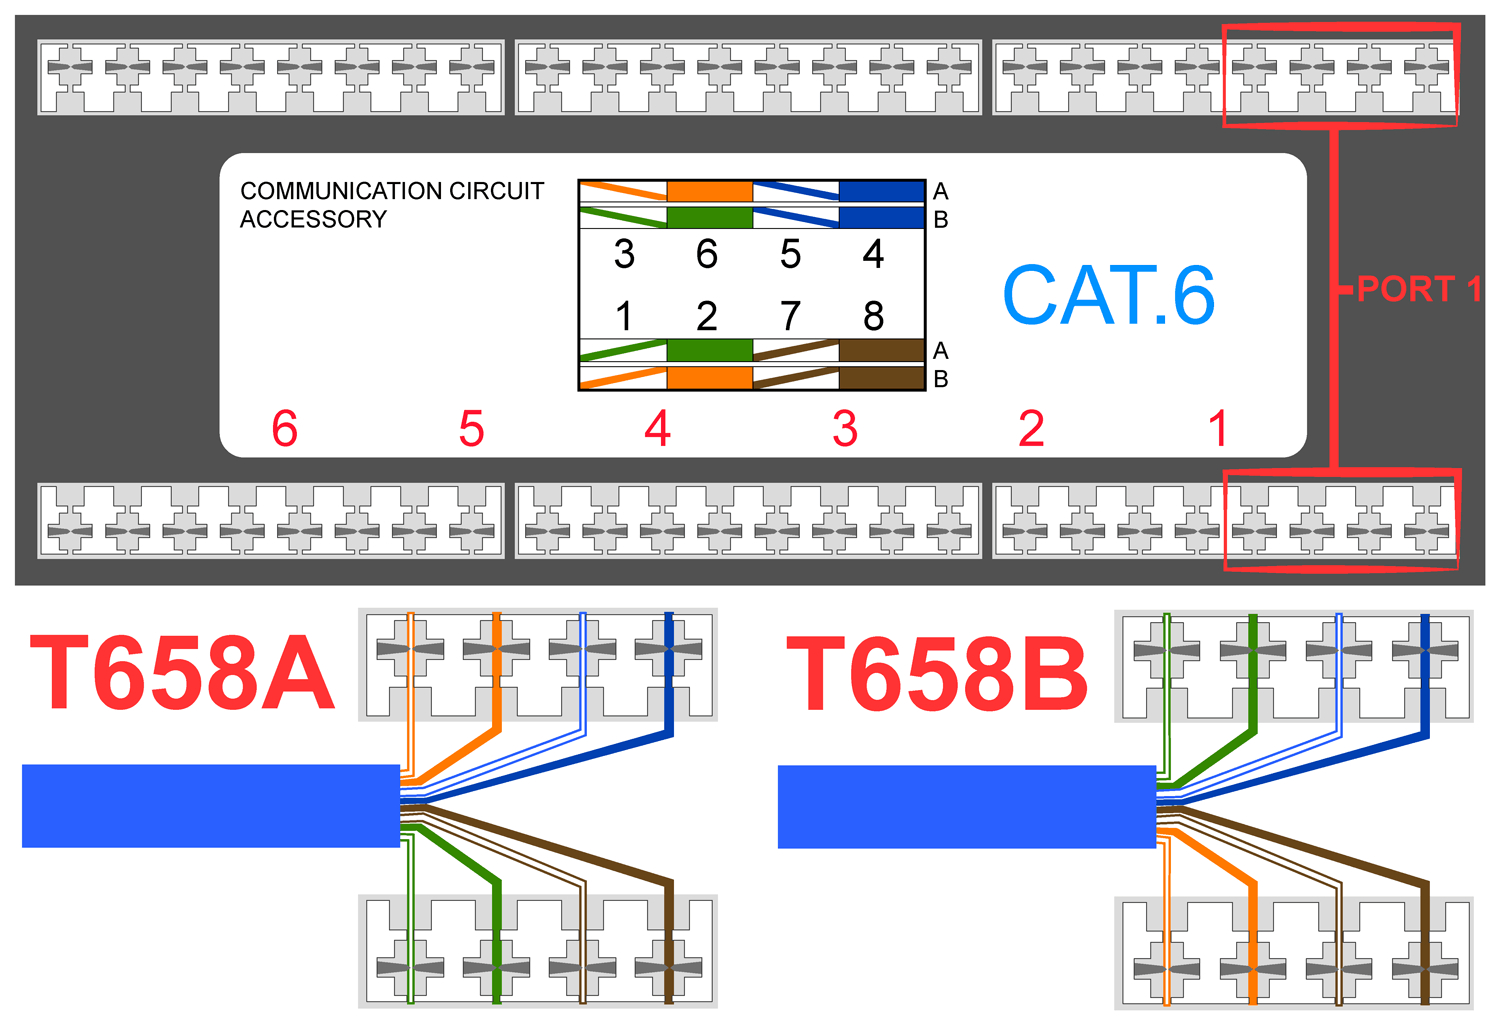 cat6 keystone jack wiring diagram Download-Keystone Jack 13 Cat 6 Wiring Diagram For Wall Plates Roc Grp Org 15 2-n